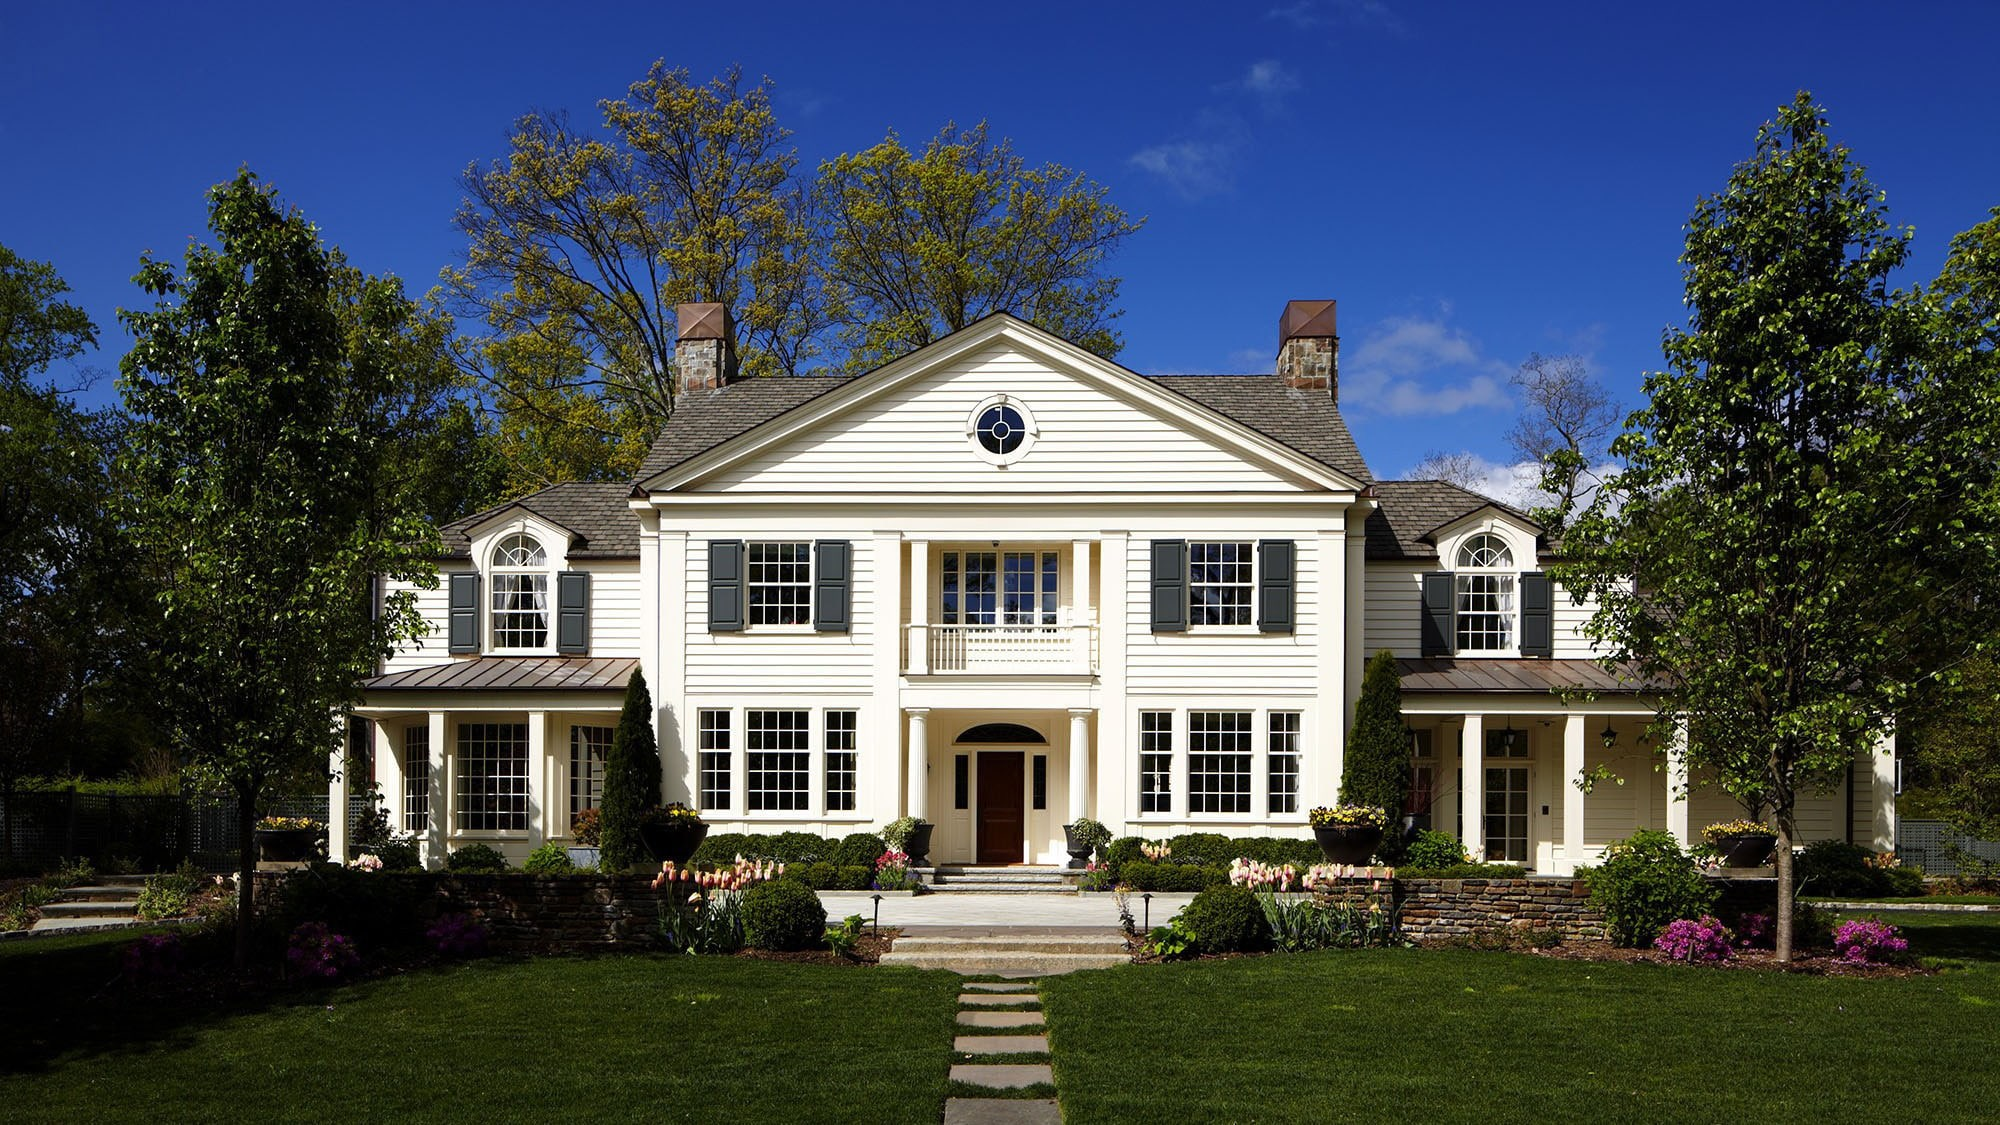 Colonial House - Scarsdale